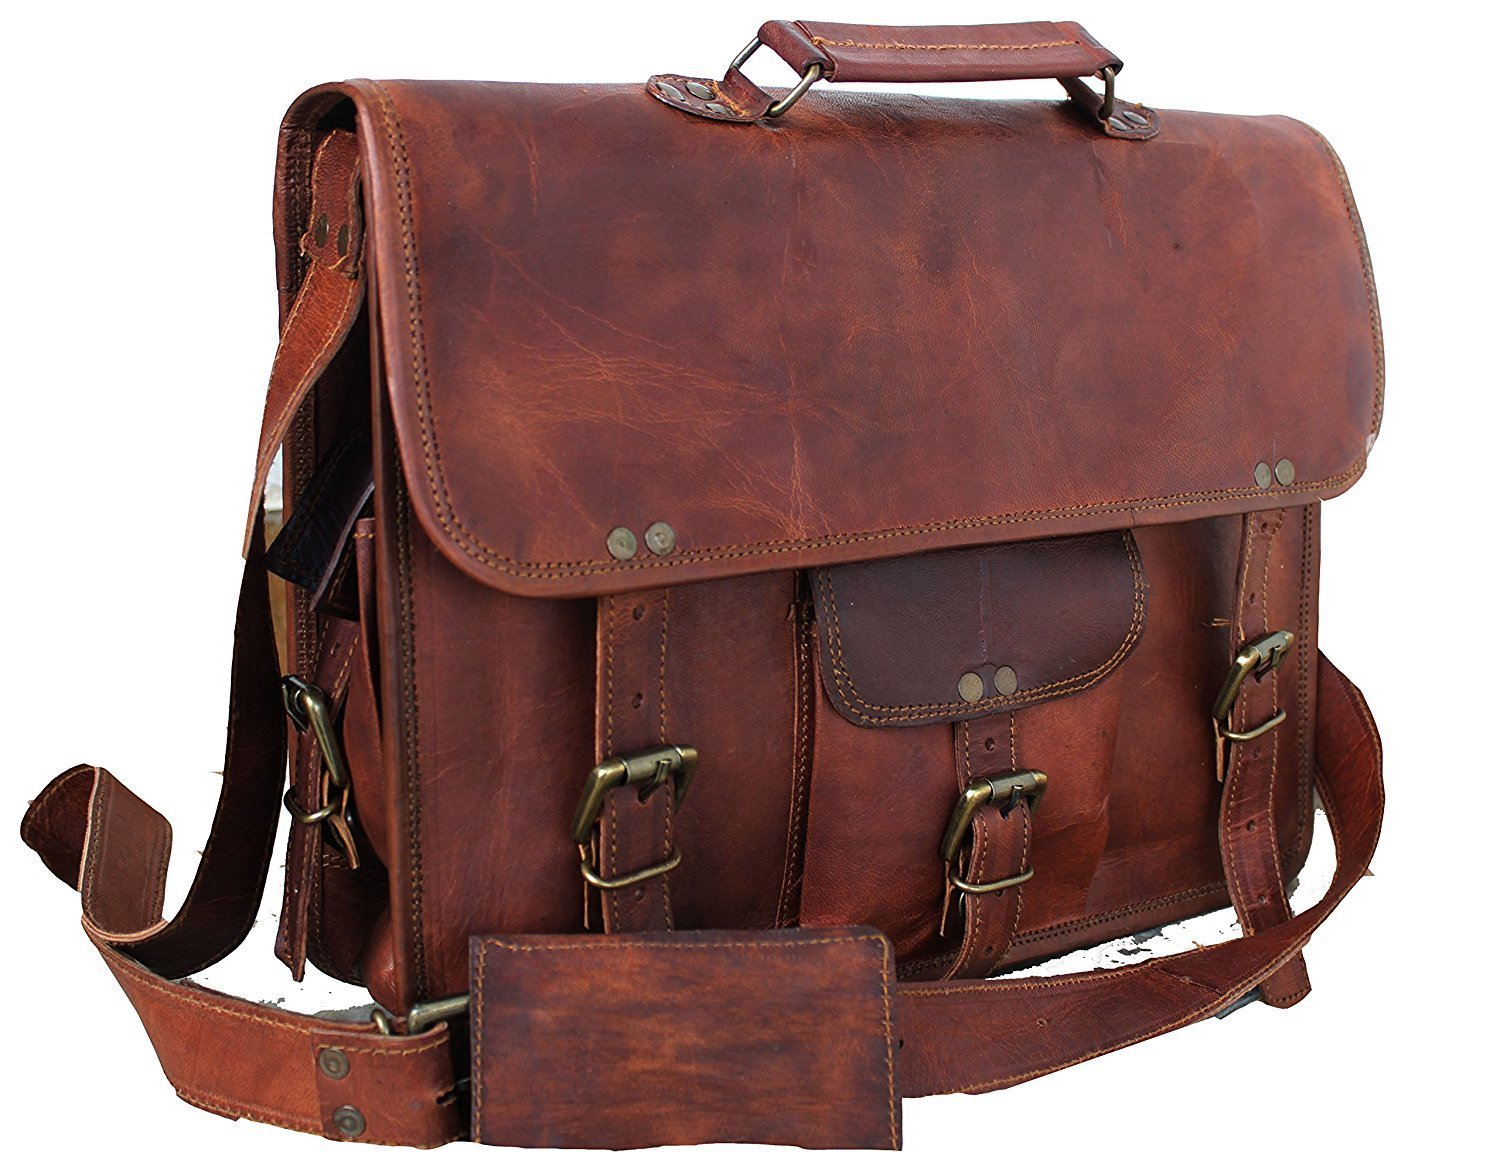 TUZECH Genuine Leather Bag Laptop Vintage Messenger Bag Handmade Unisex Fits Laptop Upto 15 Inches